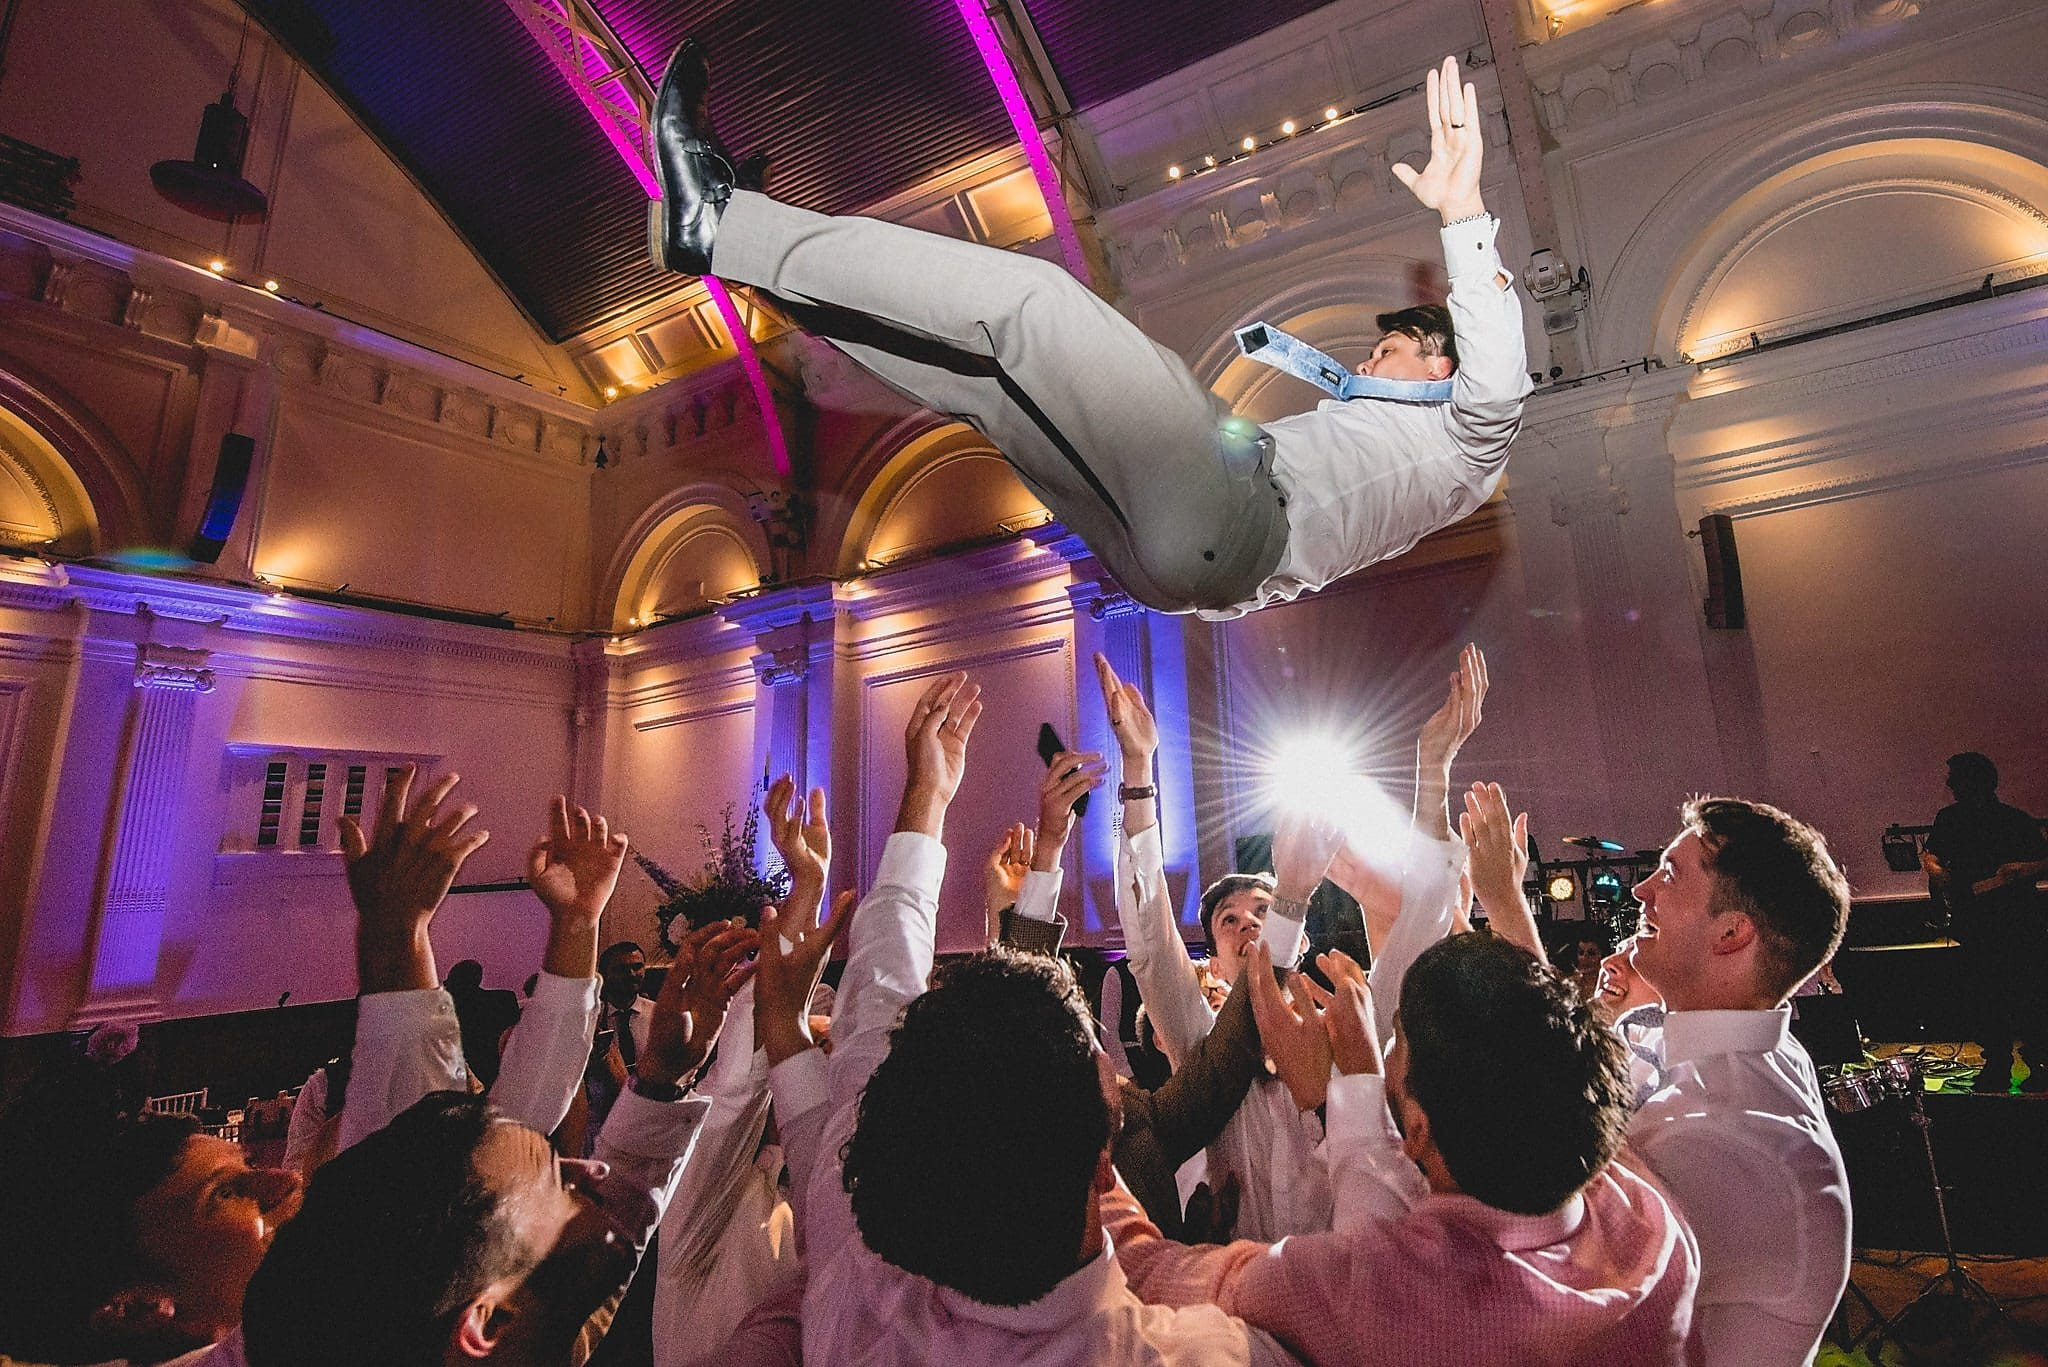 Groomsmen throw the groom in the air at the Royal Horticultural Halls